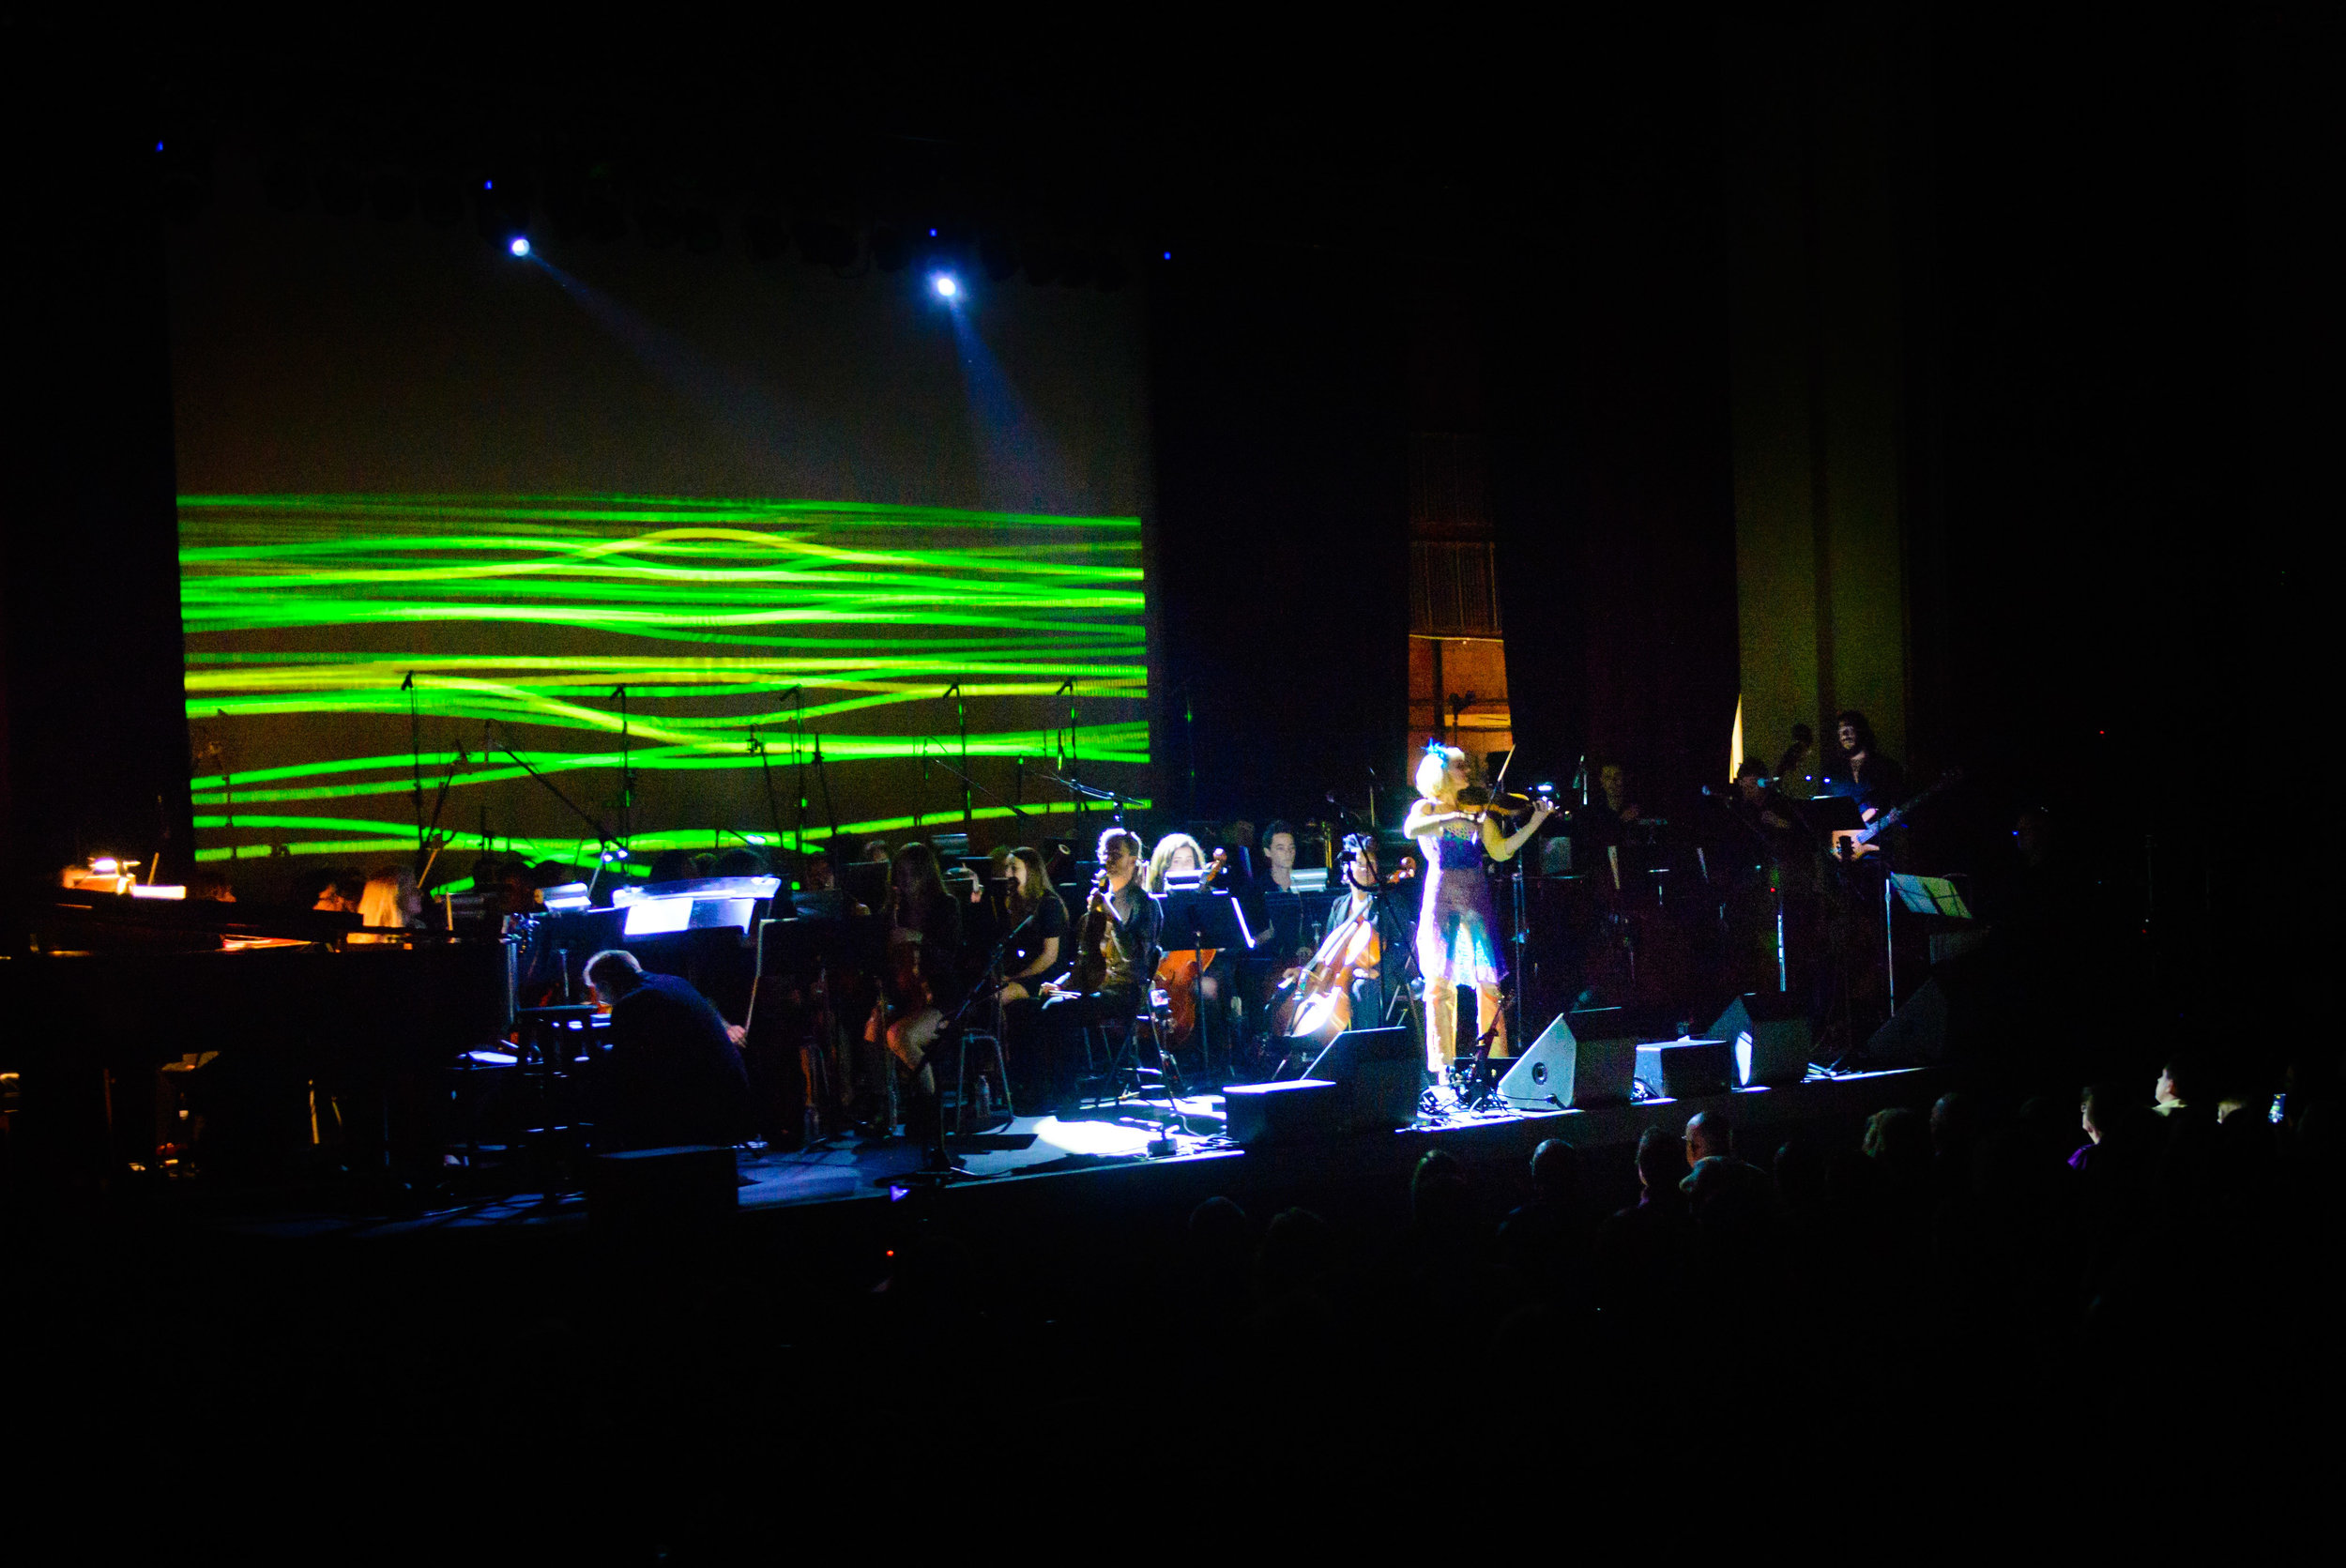 Thank you to Ro-z Edelston and Joshua DeLorimier for exceptional lighting and projections throughout the show